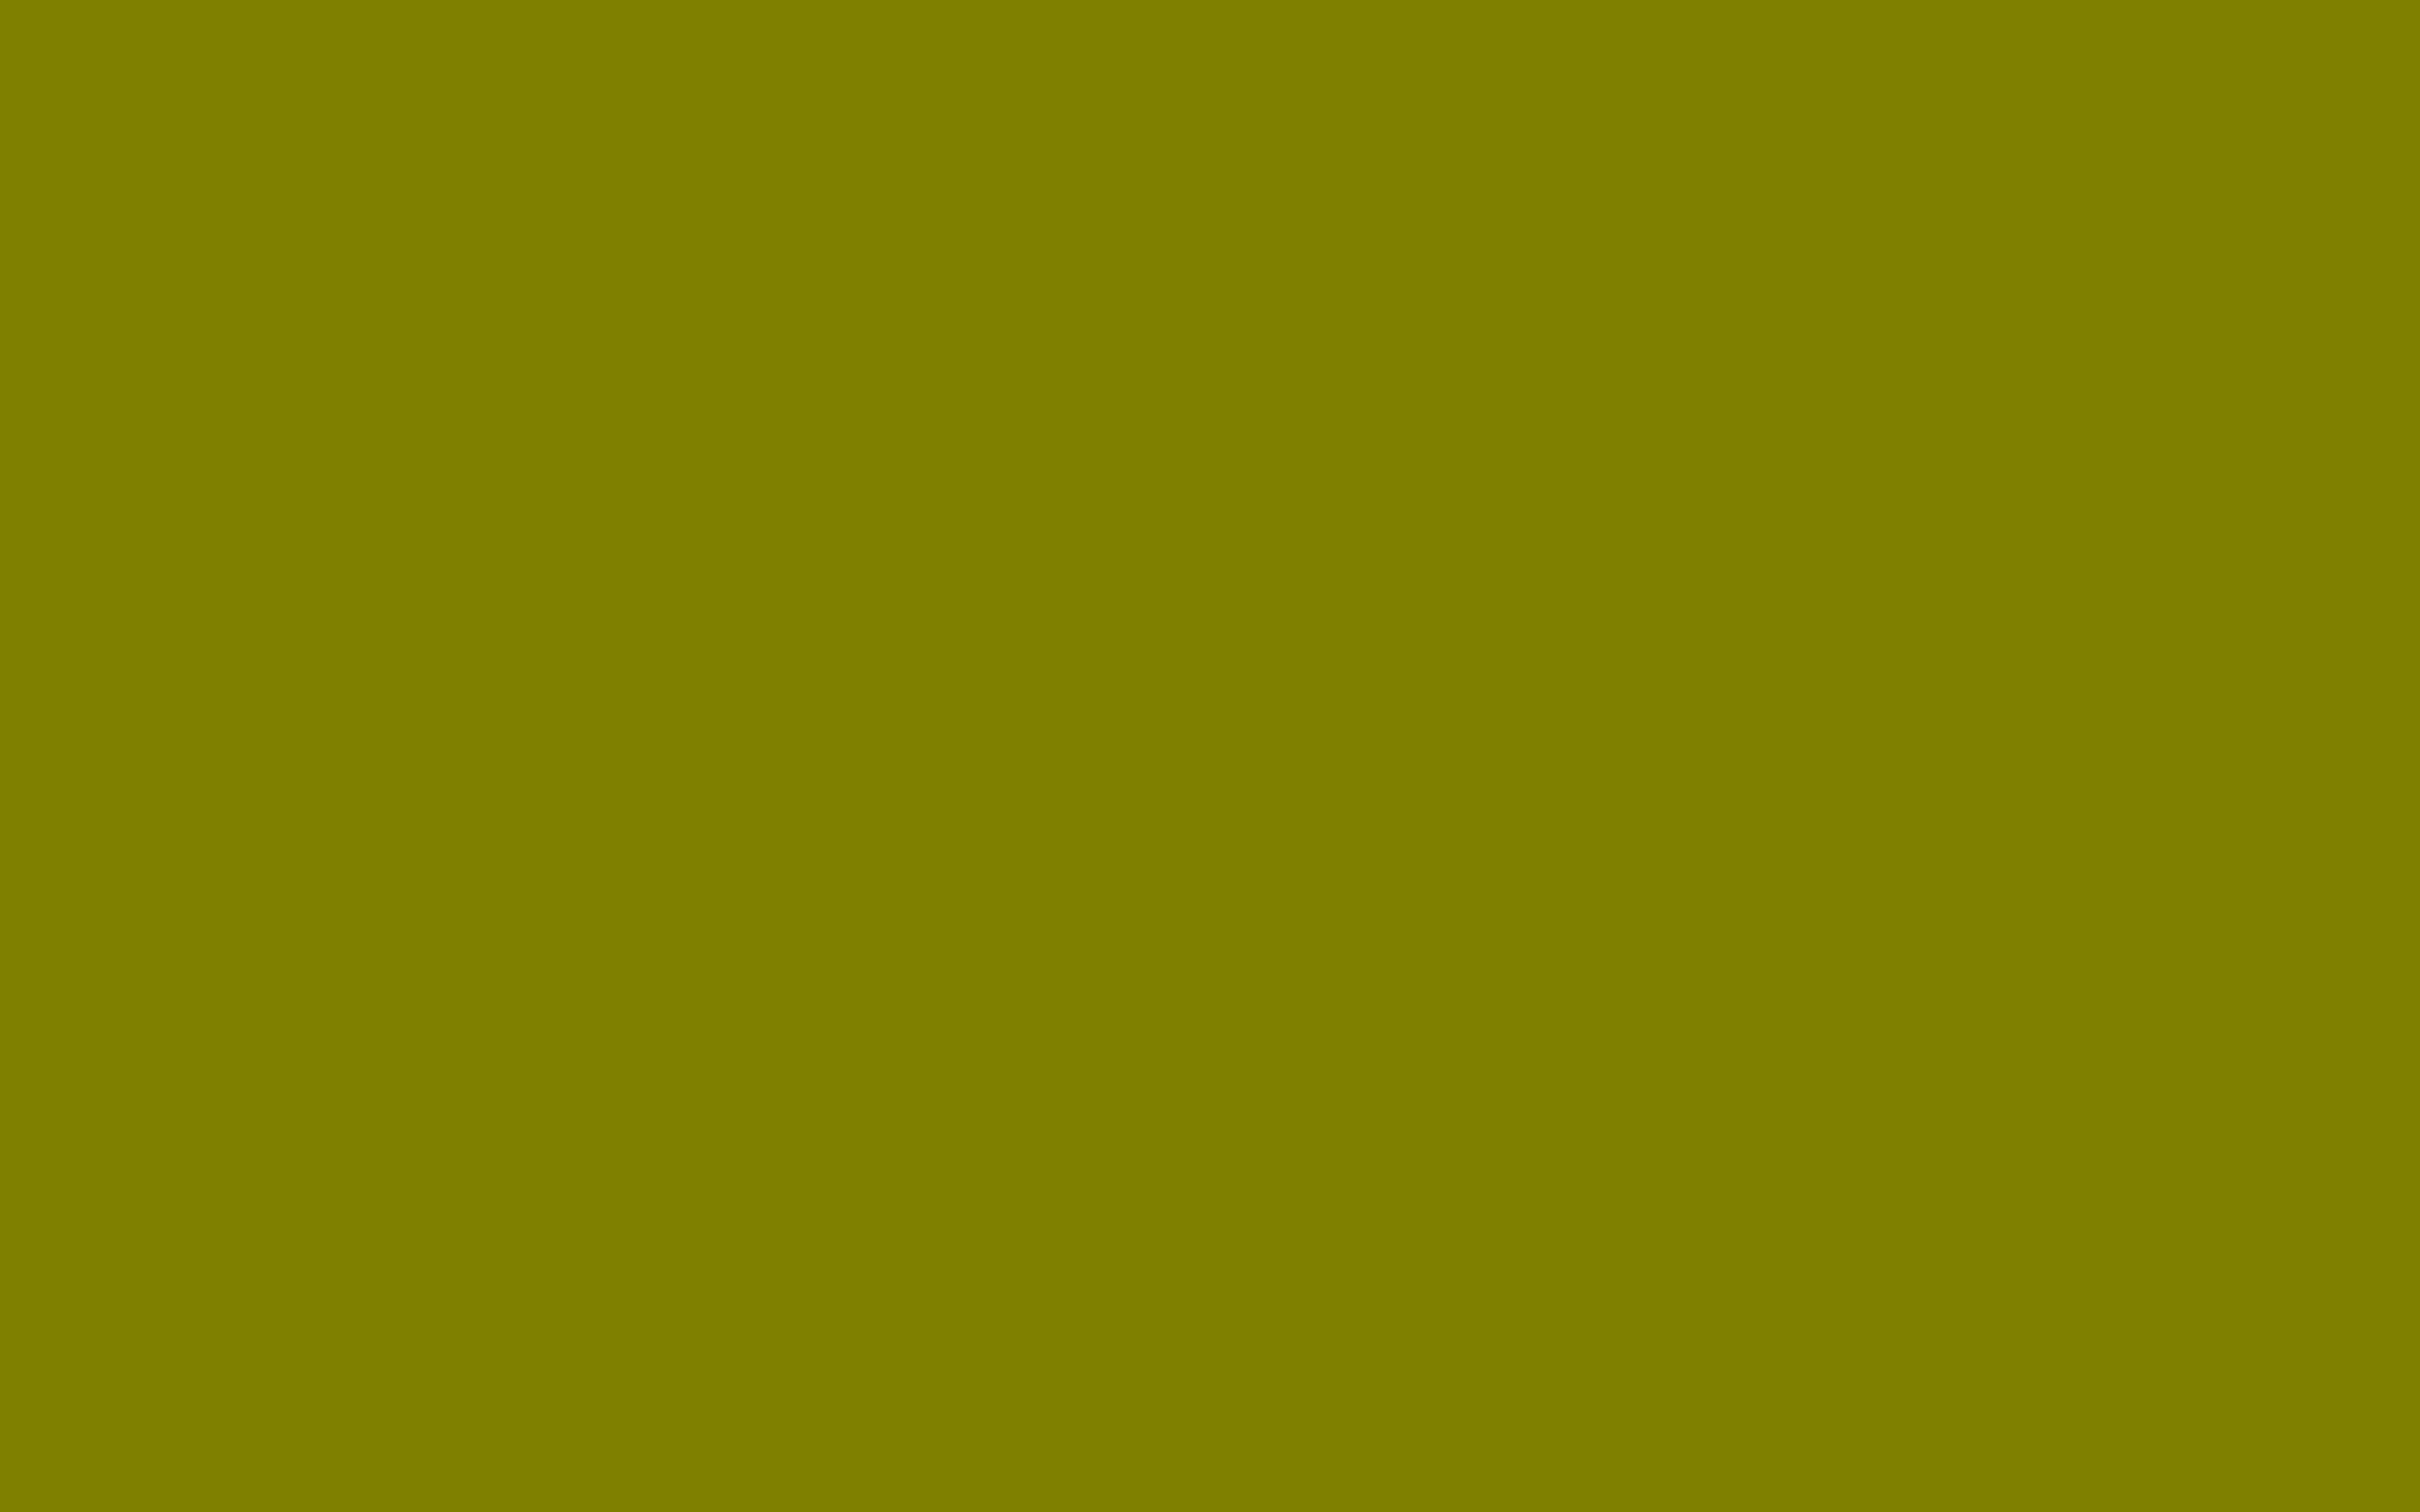 Gold solid color background view and download the below background 2560x1600